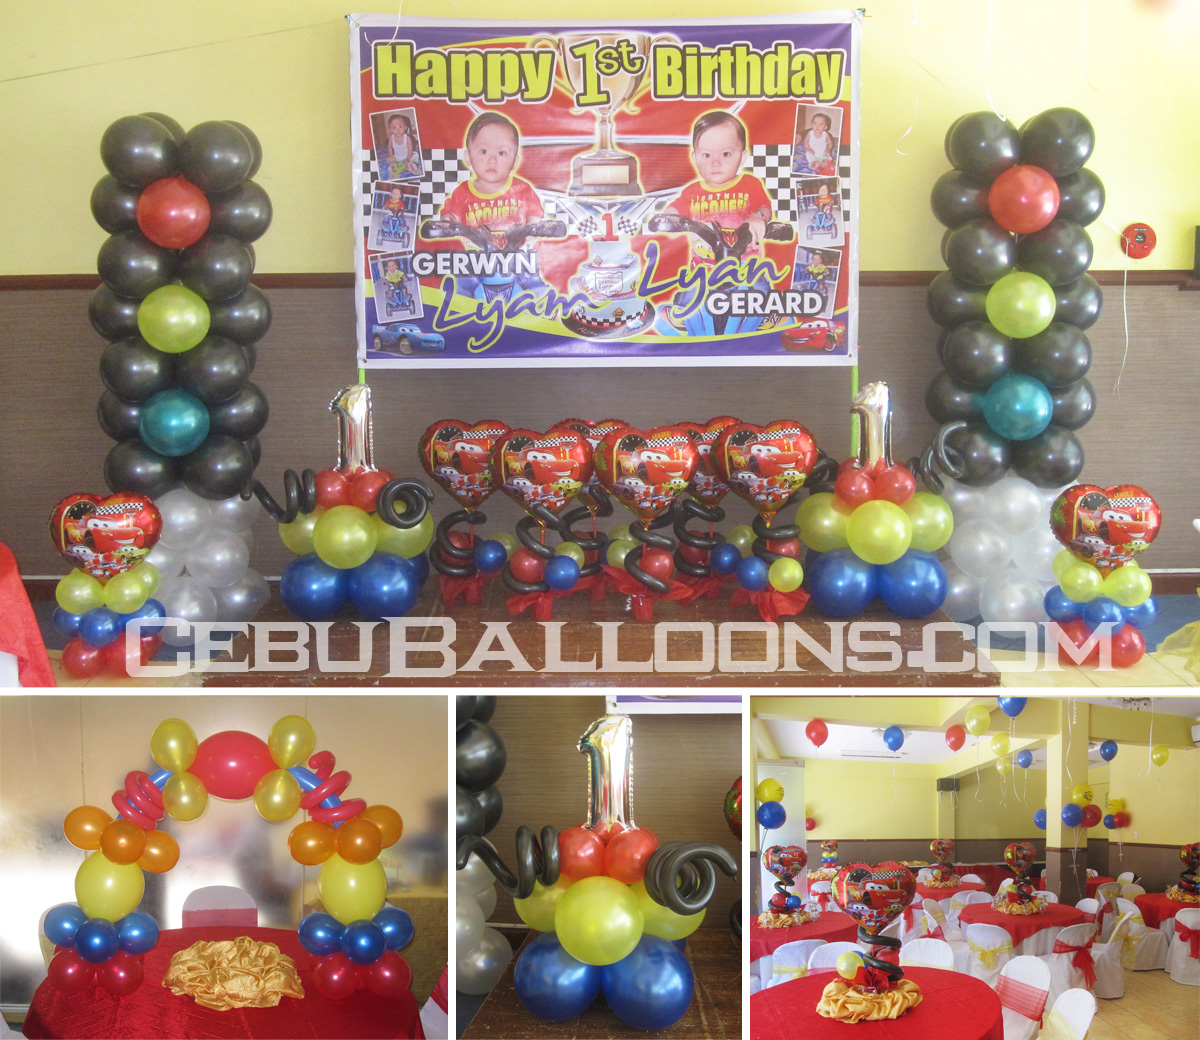 Lightning McQueen Balloon Decoration for Twins Birthday at Hannahs